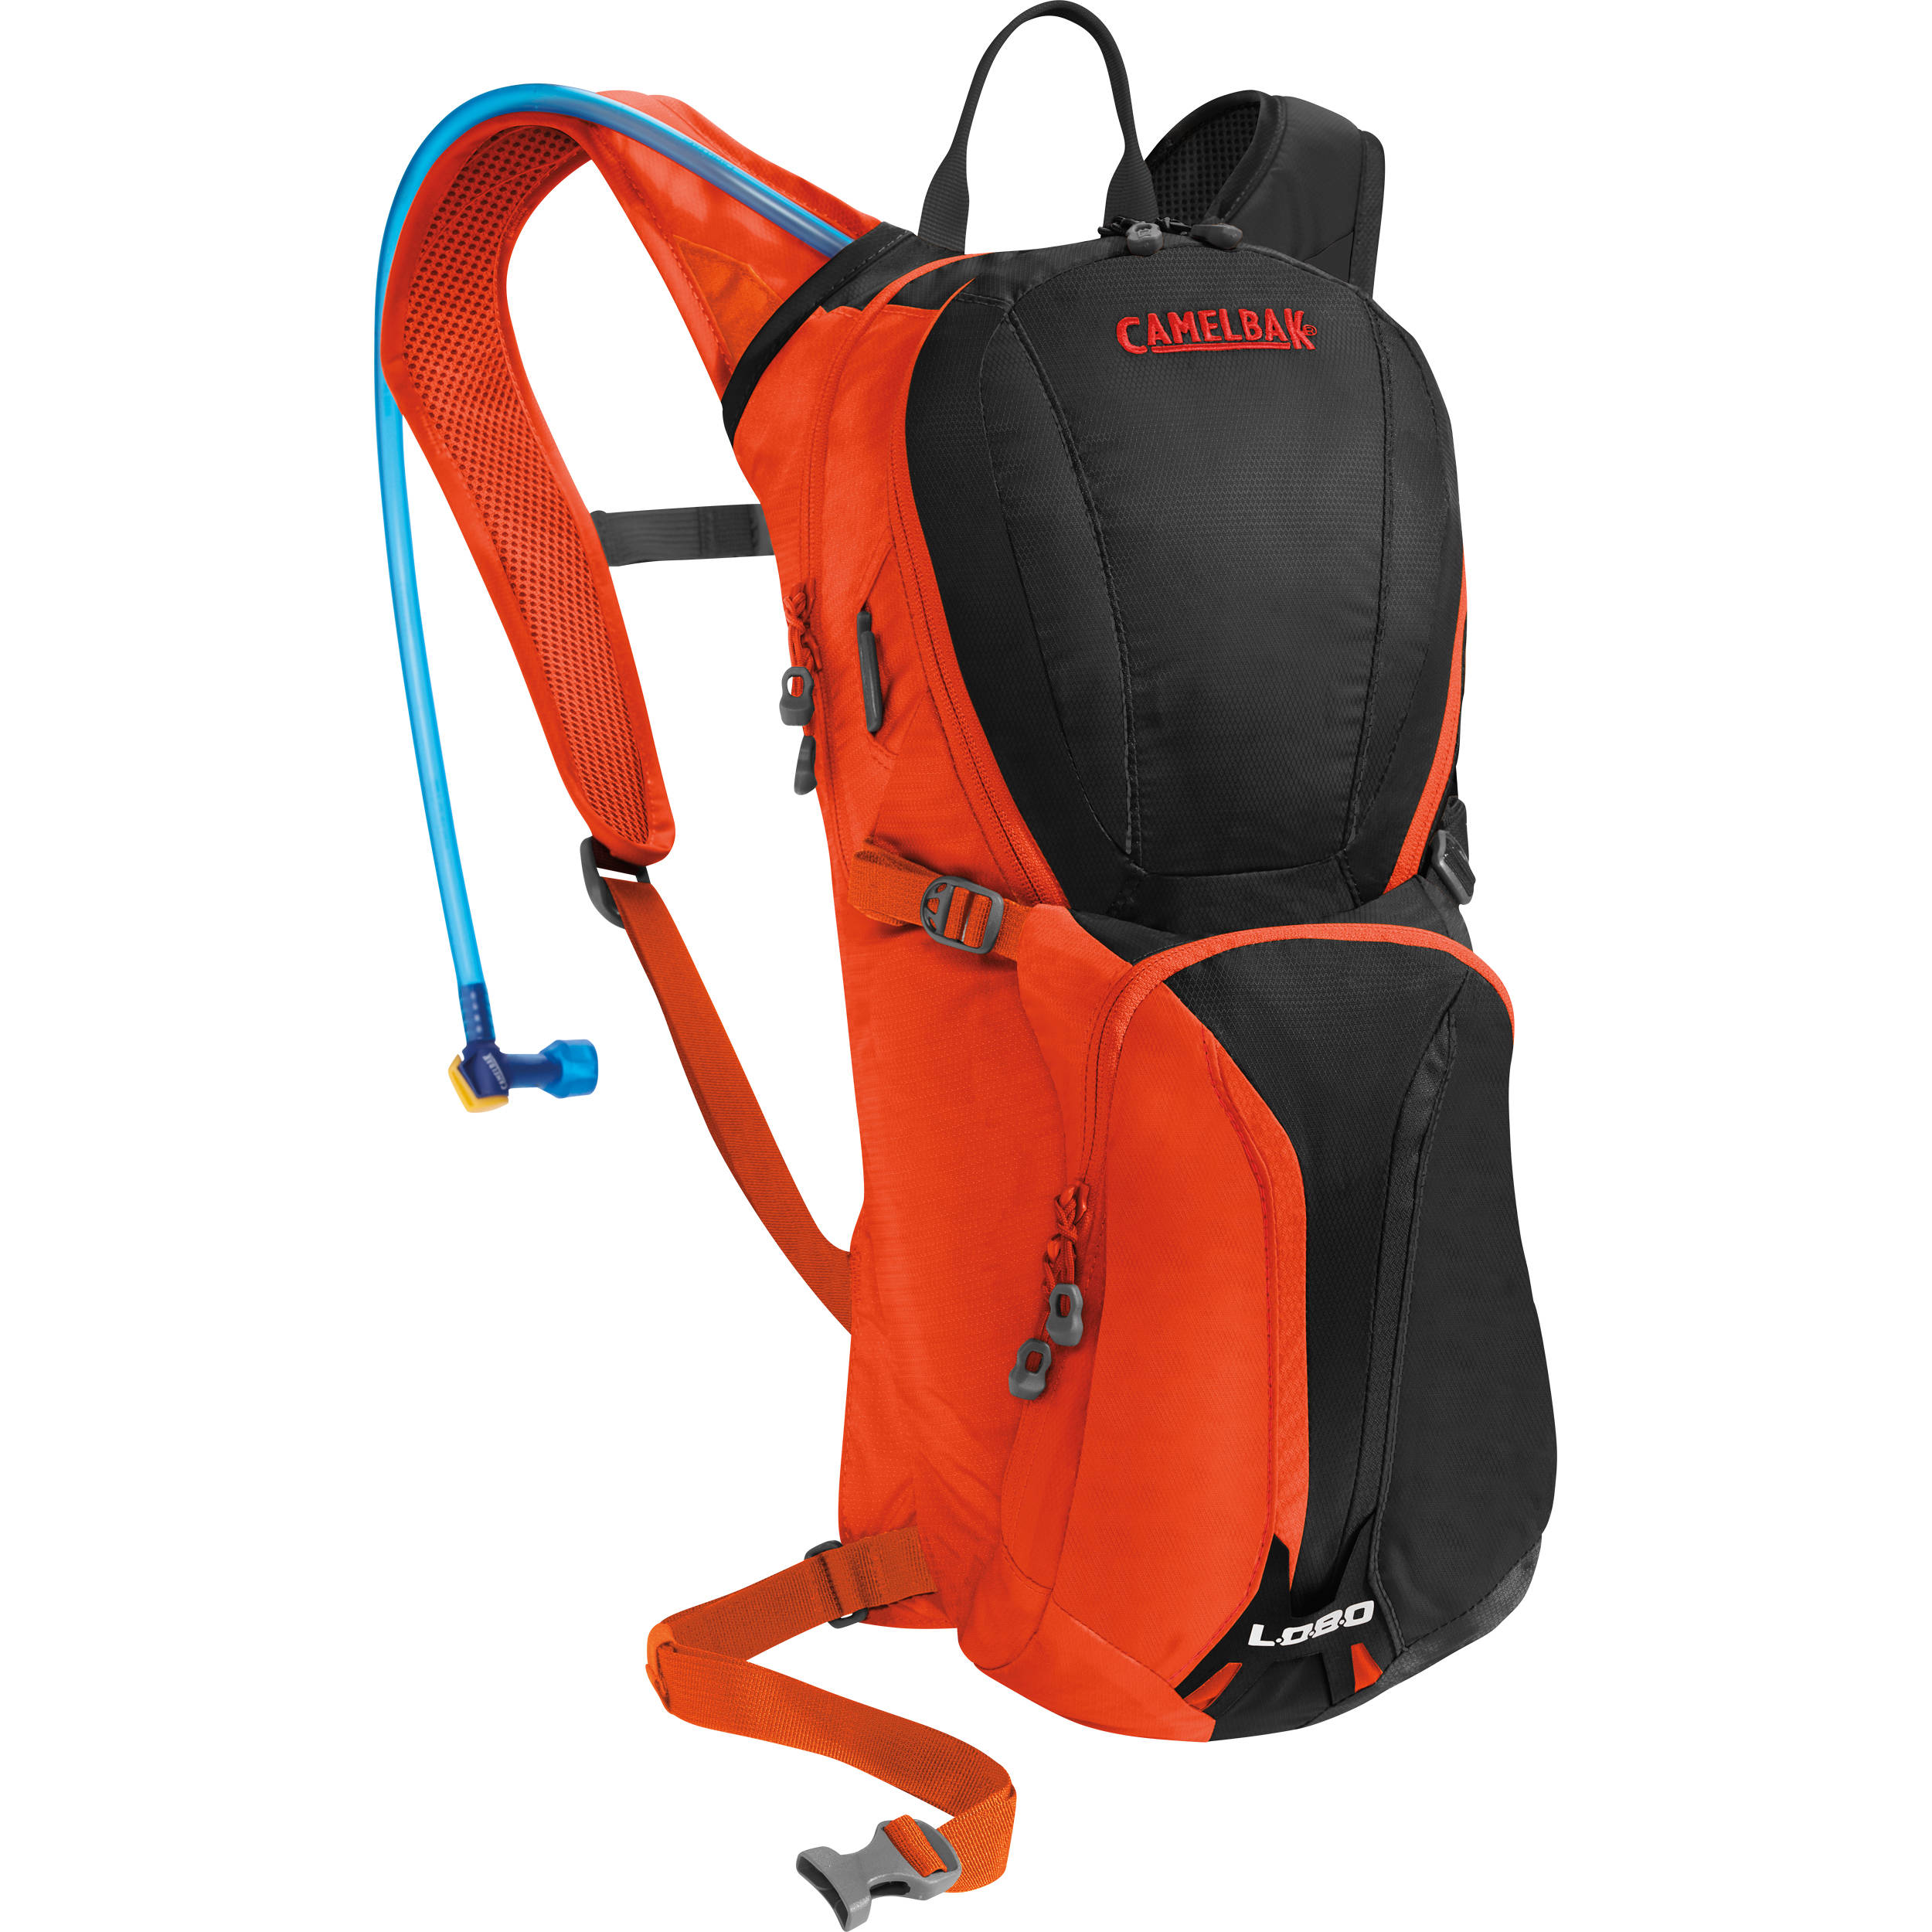 Camelbak Lobo 100oz Hydration 6L Pack Charcoal/Ember